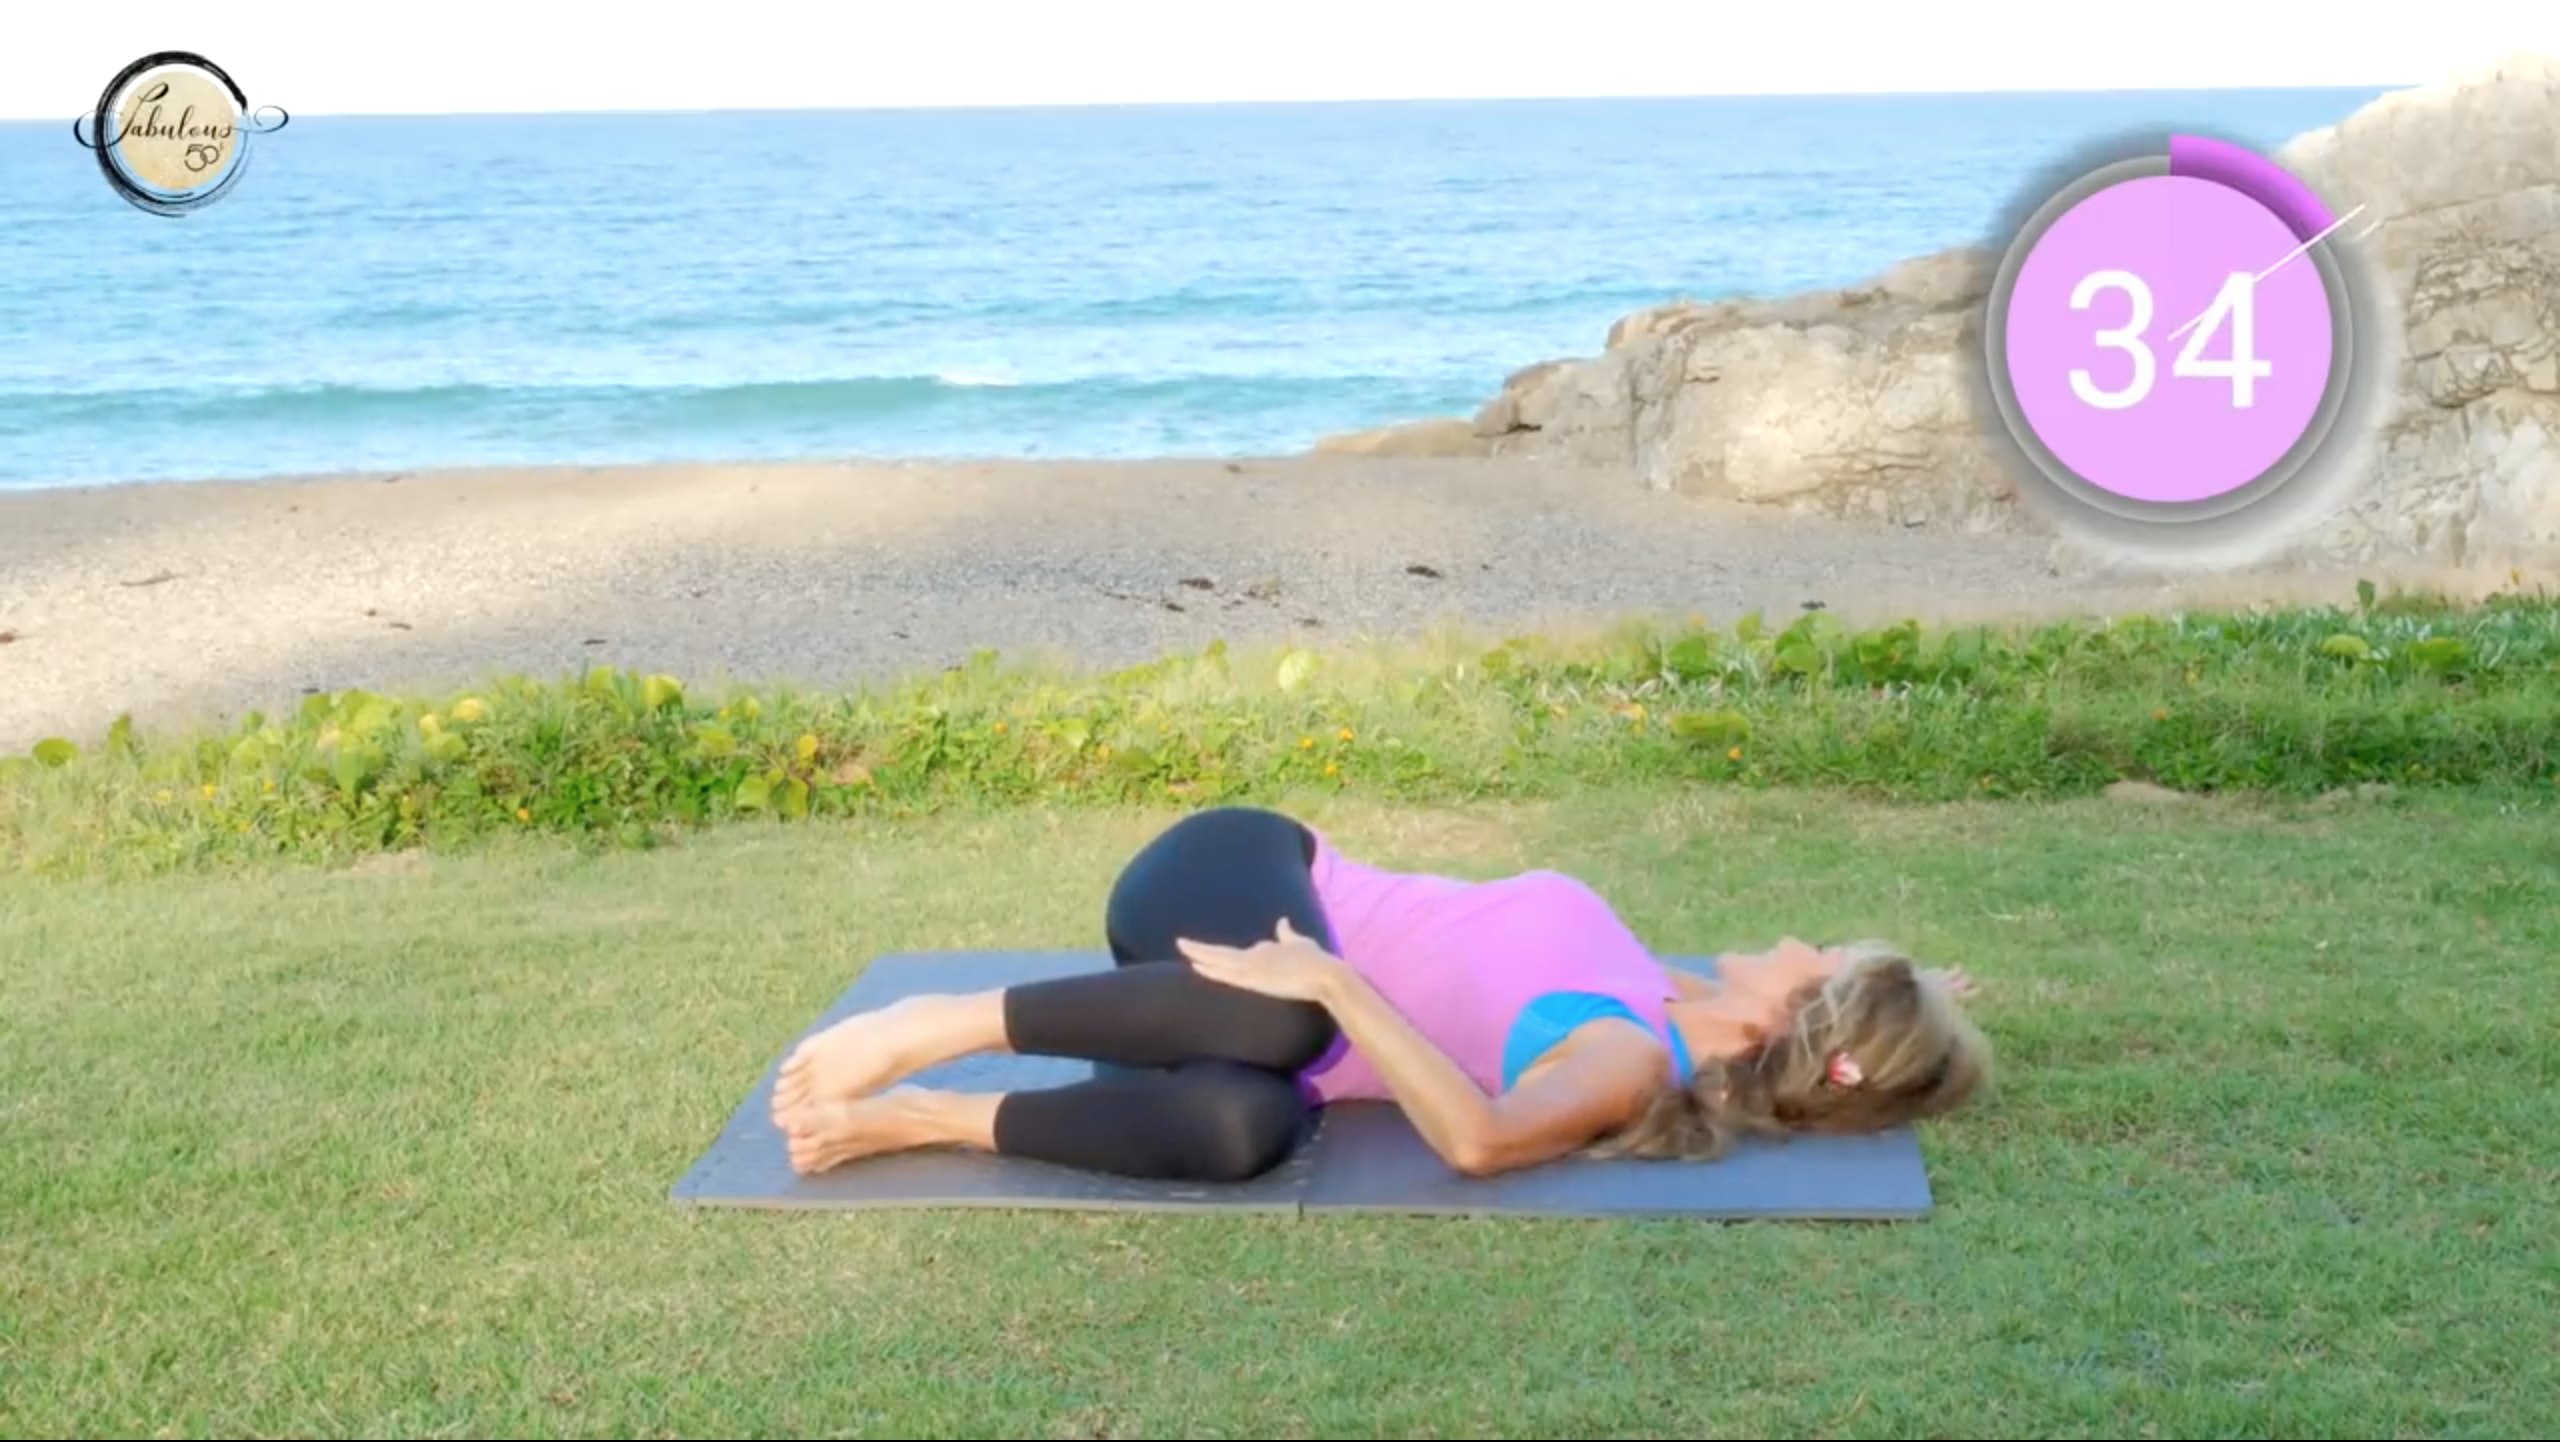 10 Minute AB Workout For Women Over 50